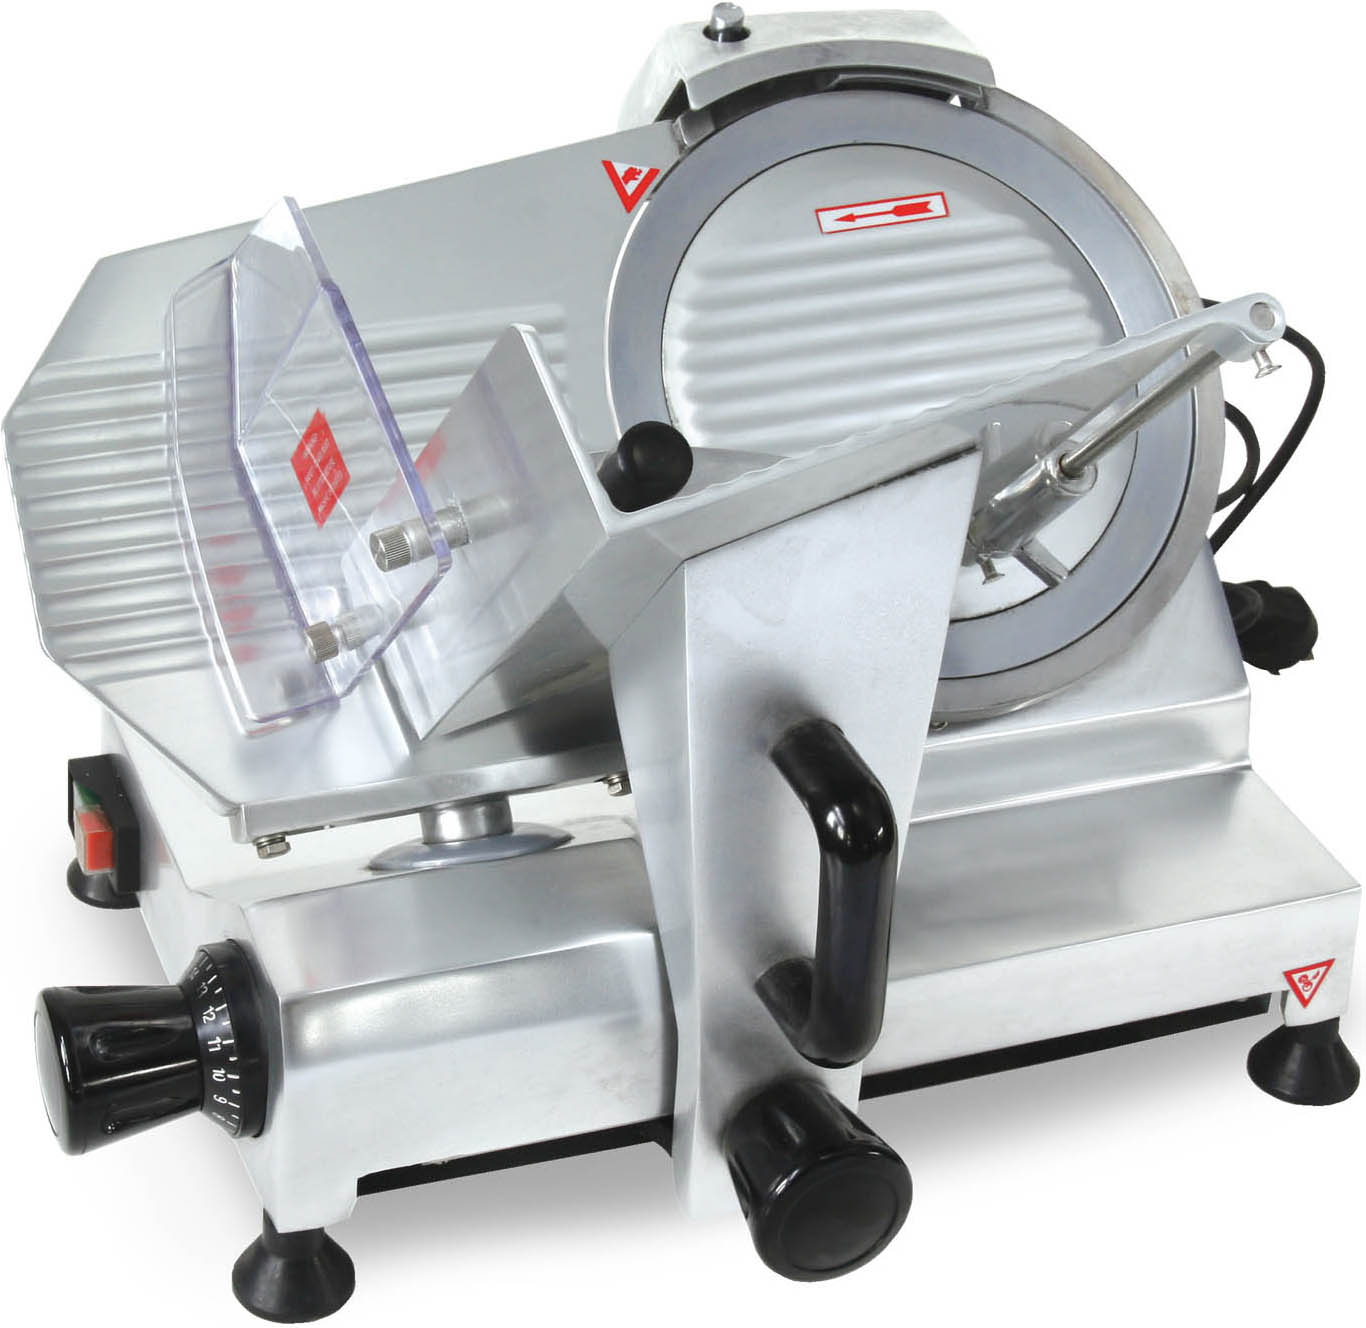 OMCAN Economy 9in Commercial Deli Meat Slicer